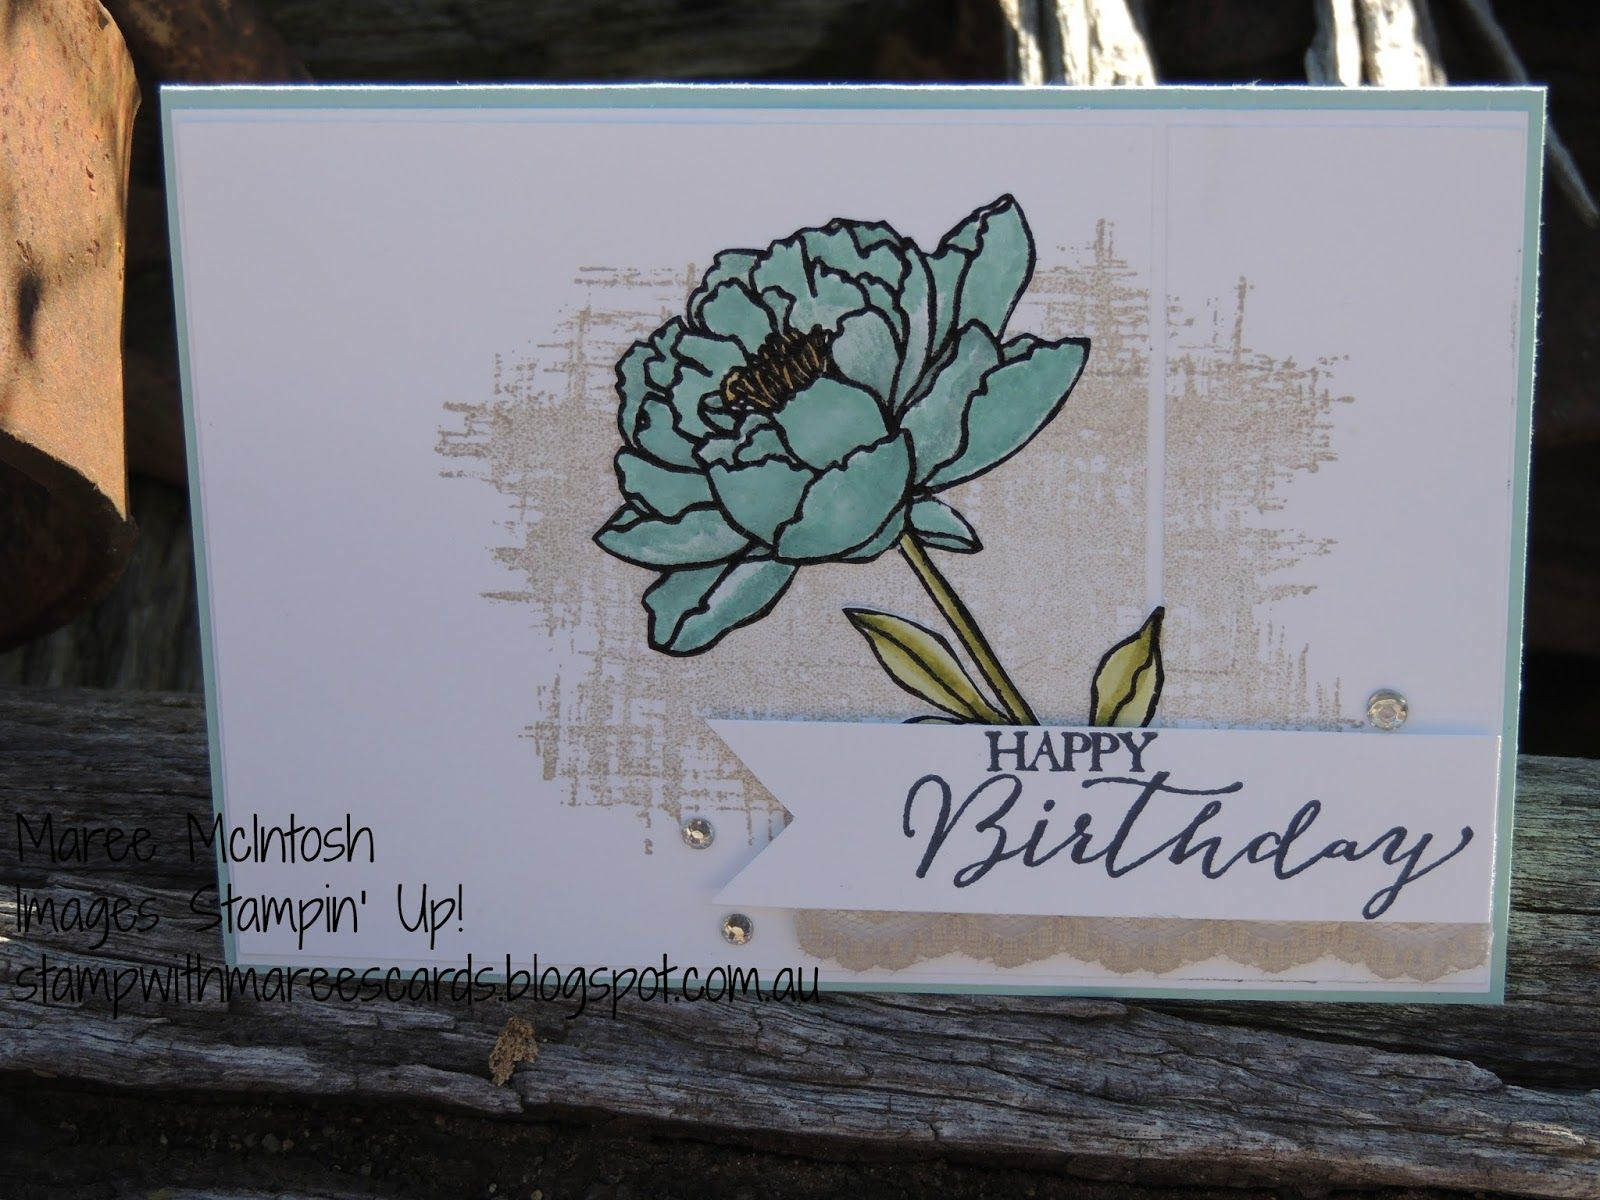 Maree McIntosh Stampin' Up Demonstrator, You've Got This stamp set, Butterfly Basics stampset,Lost Lagoon, Pool Party